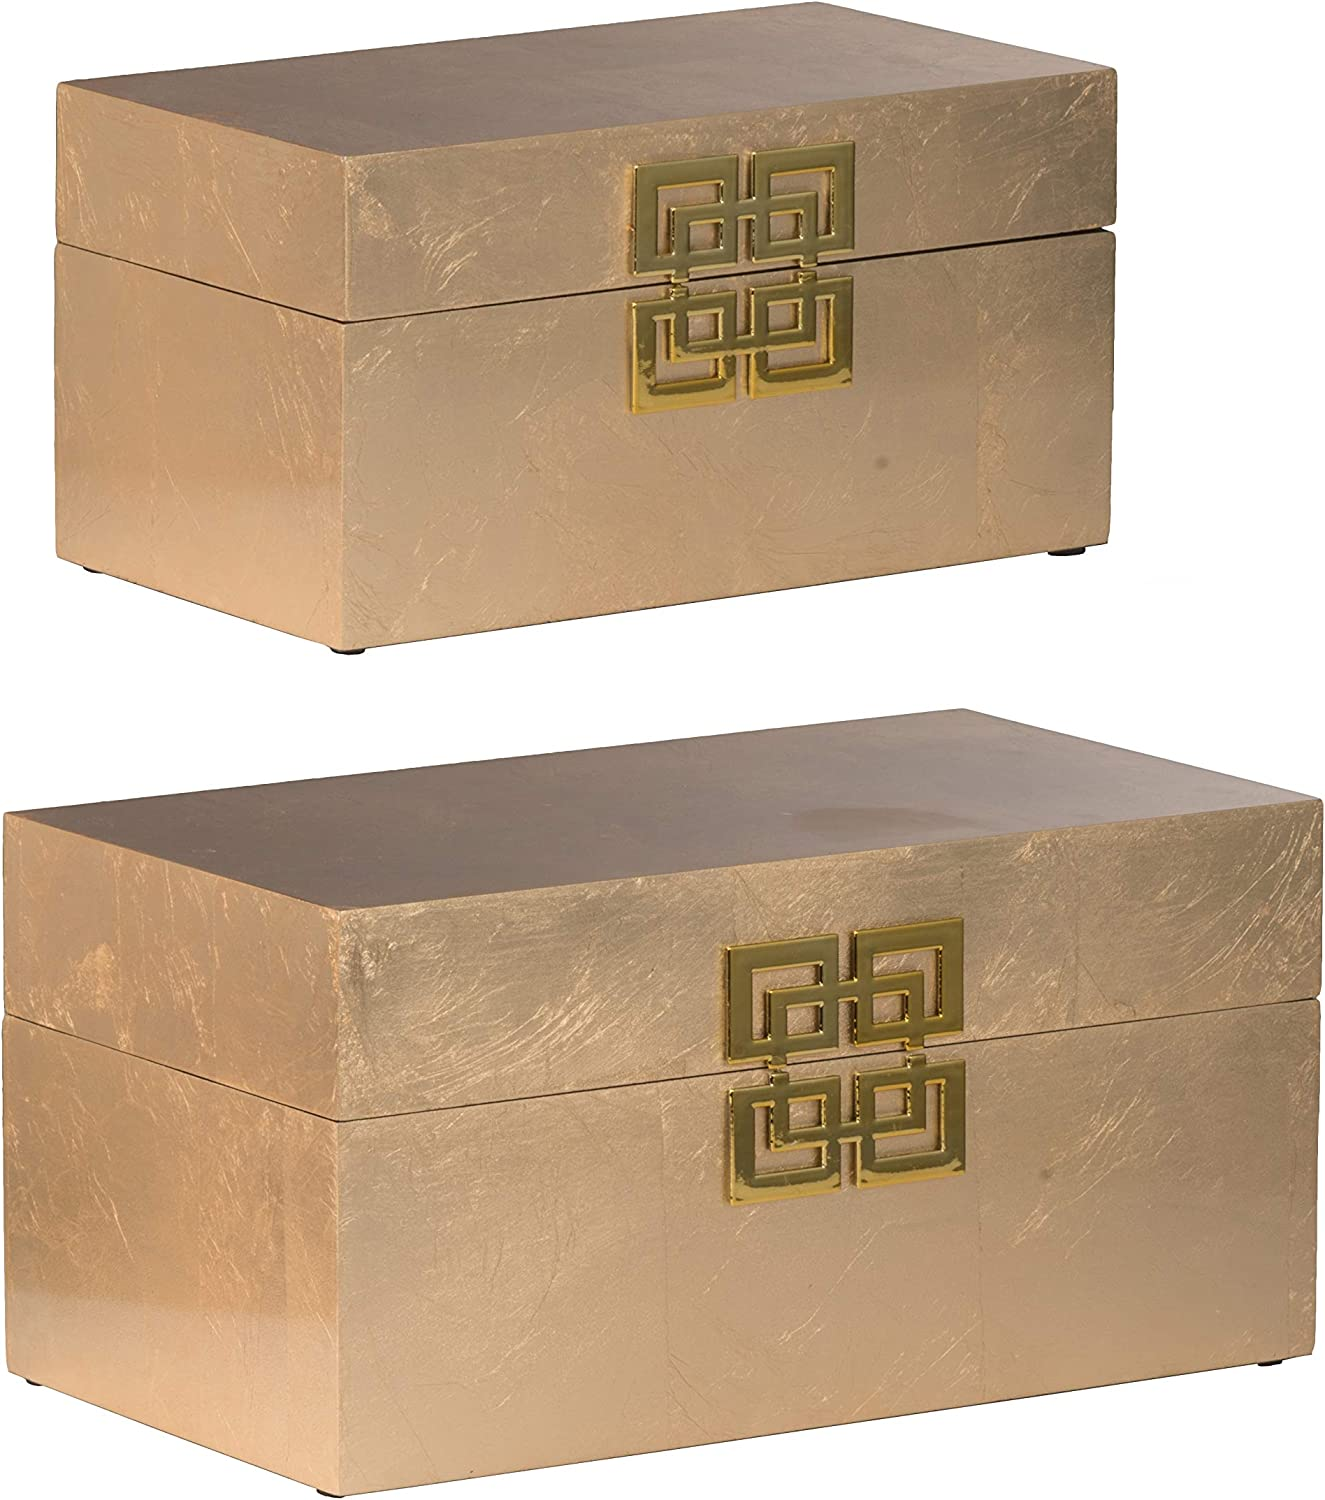 A B Home Decorative Box Set Of 2 Iron Gold Dimensions 11 4l X 6 3w X 6h Inches Amazon Co Uk Kitchen Home